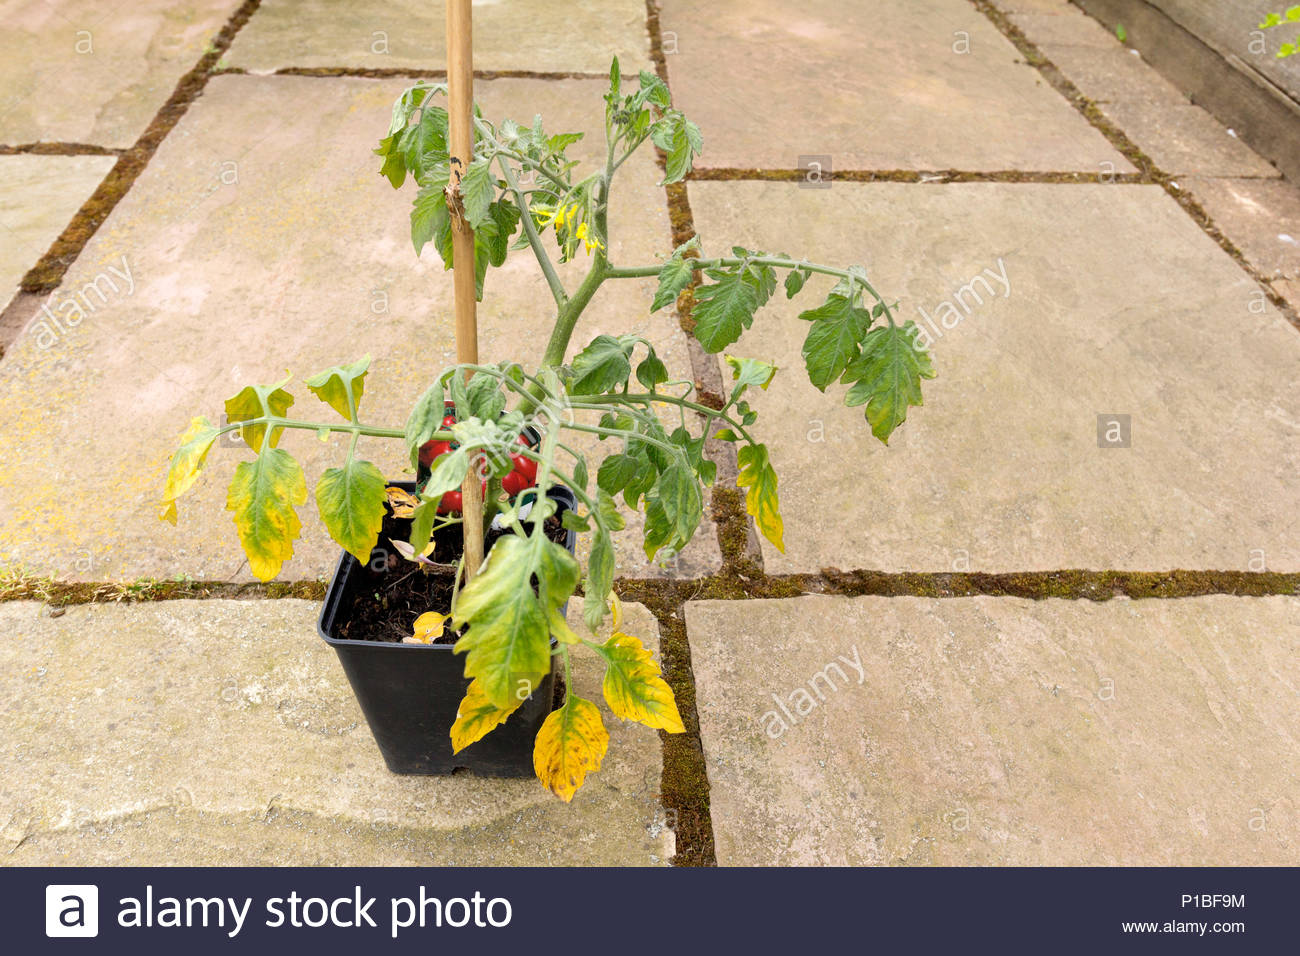 Wilted and diseased tomato plant - Stock Image